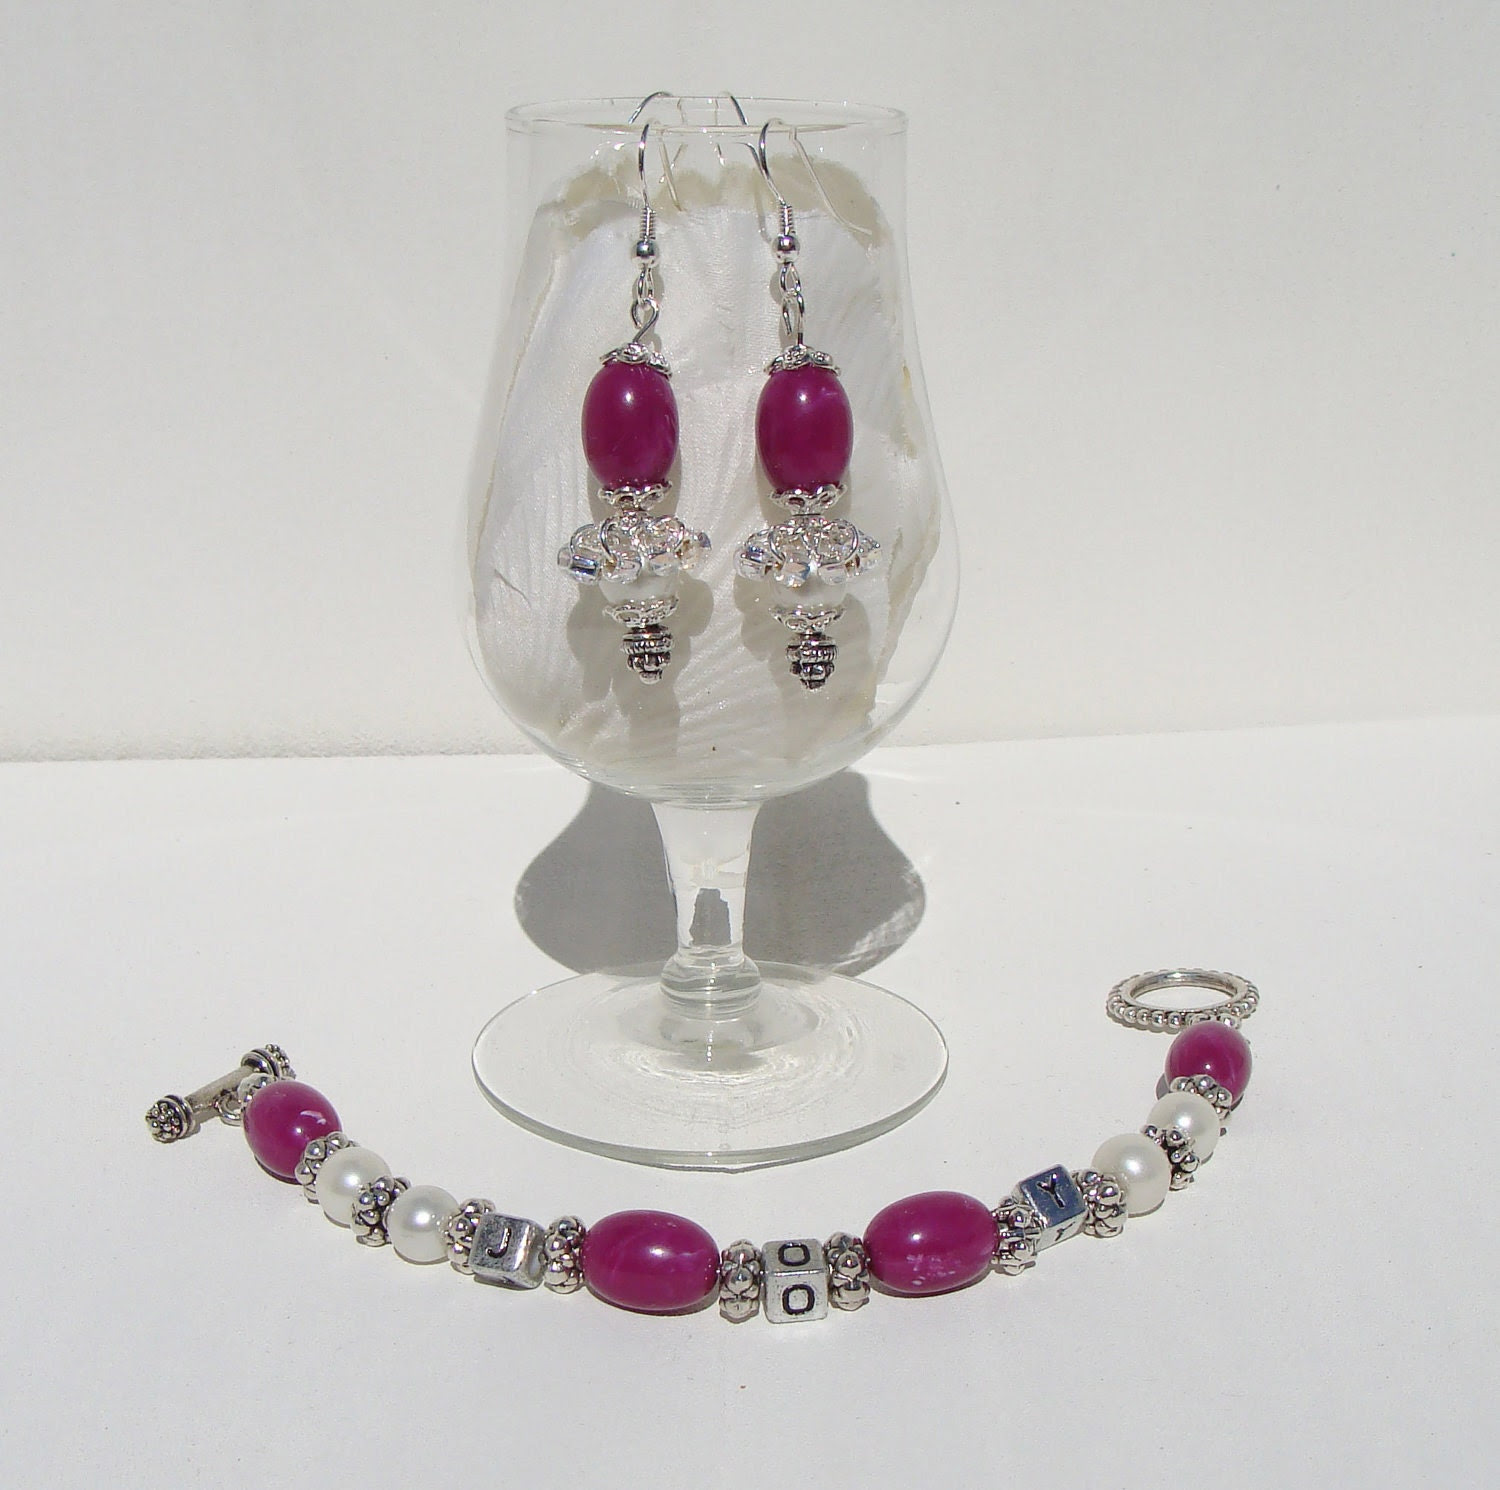 Fushia and Pearl Earrings with a Silver Sparkle